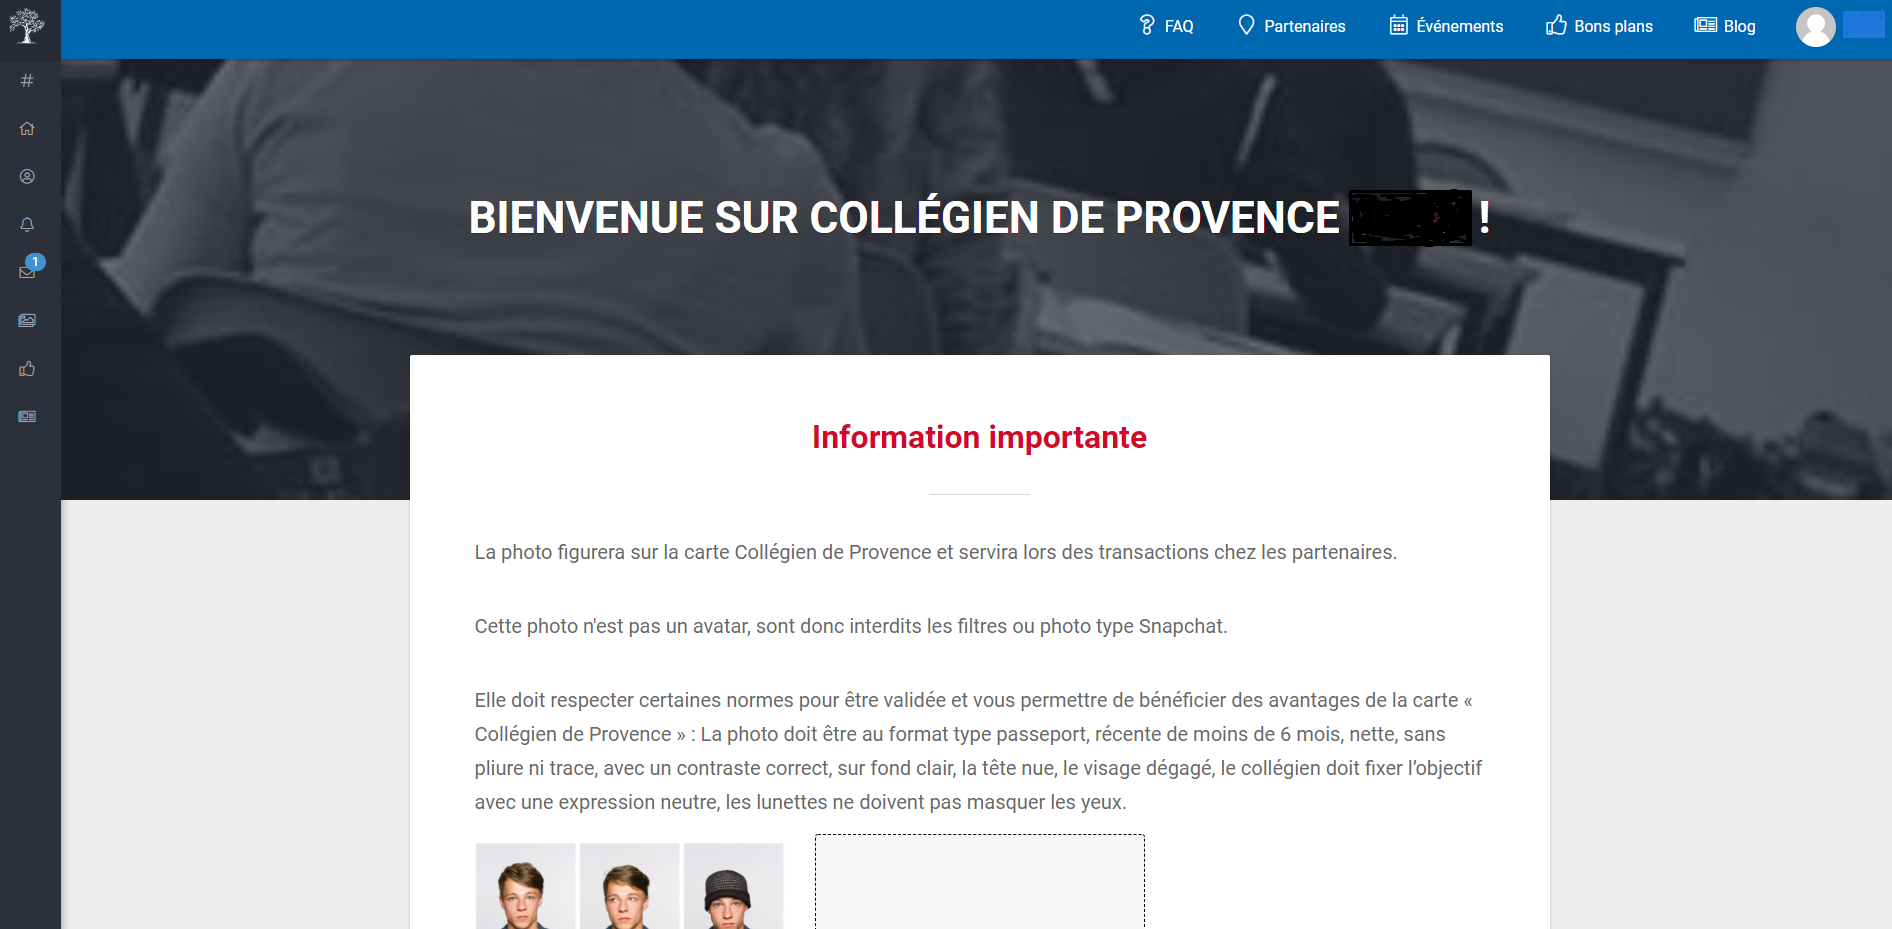 https://partenaires.collegiendeprovence.fr/ged/articles/09eee9ef-8b15-4eb1-abb3-795c84feae9a.png